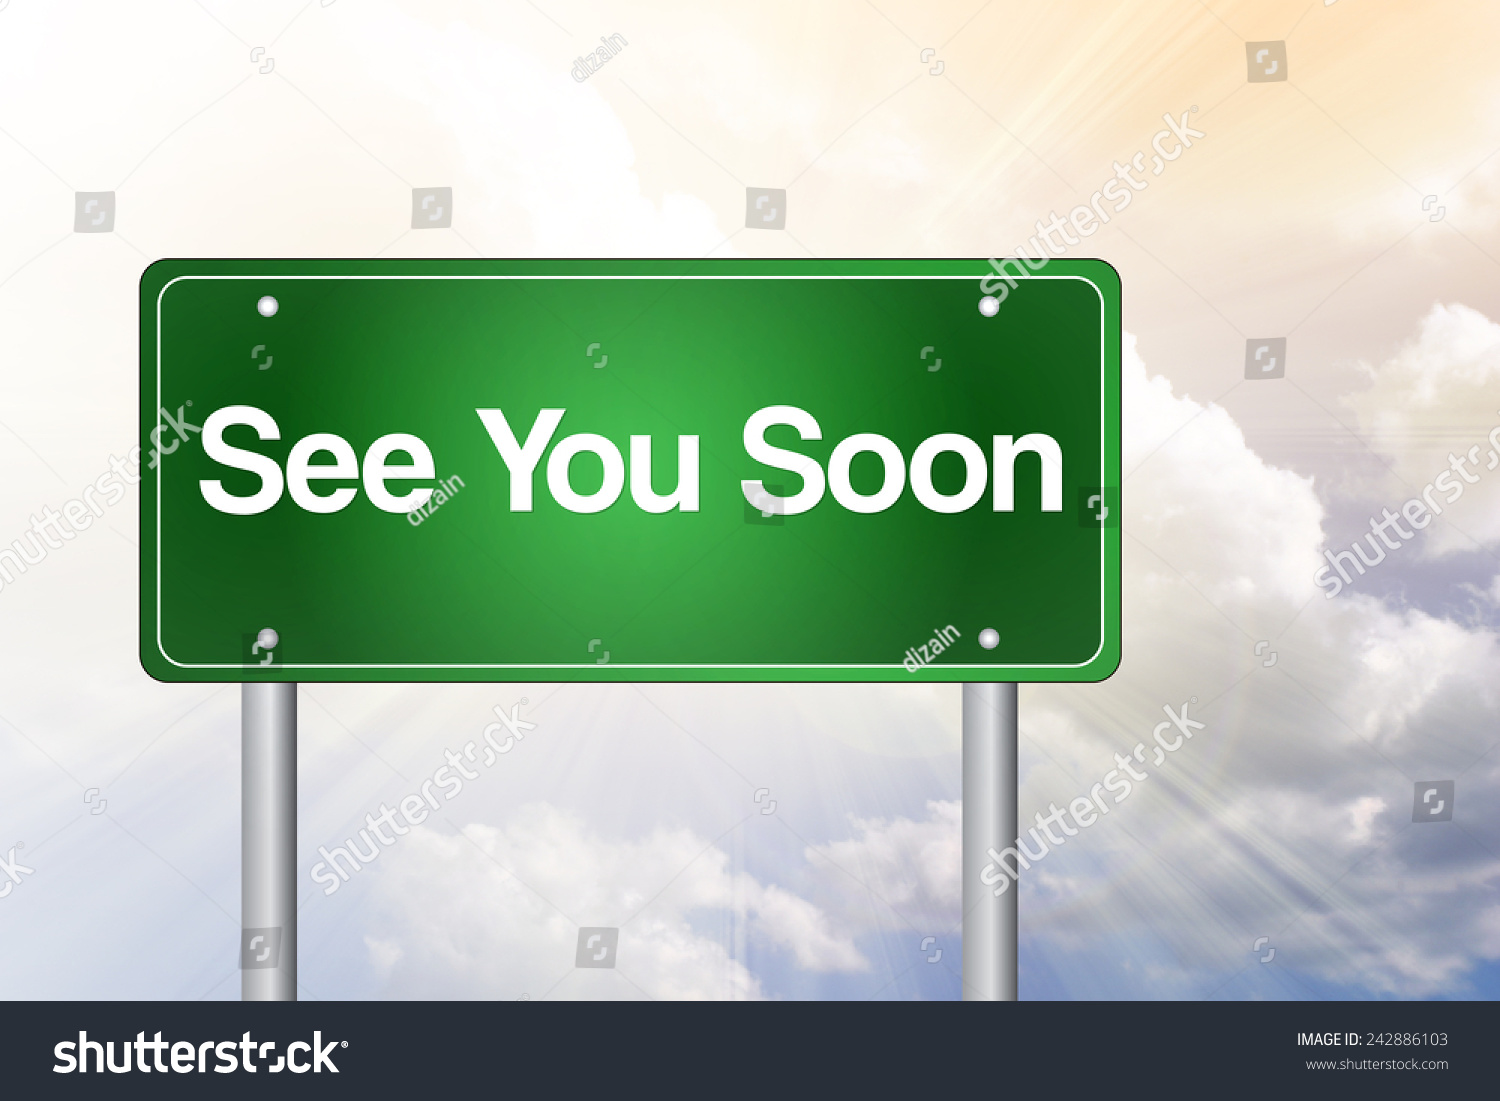 See You Soon Green Road Sign Business Concept Stock Photo